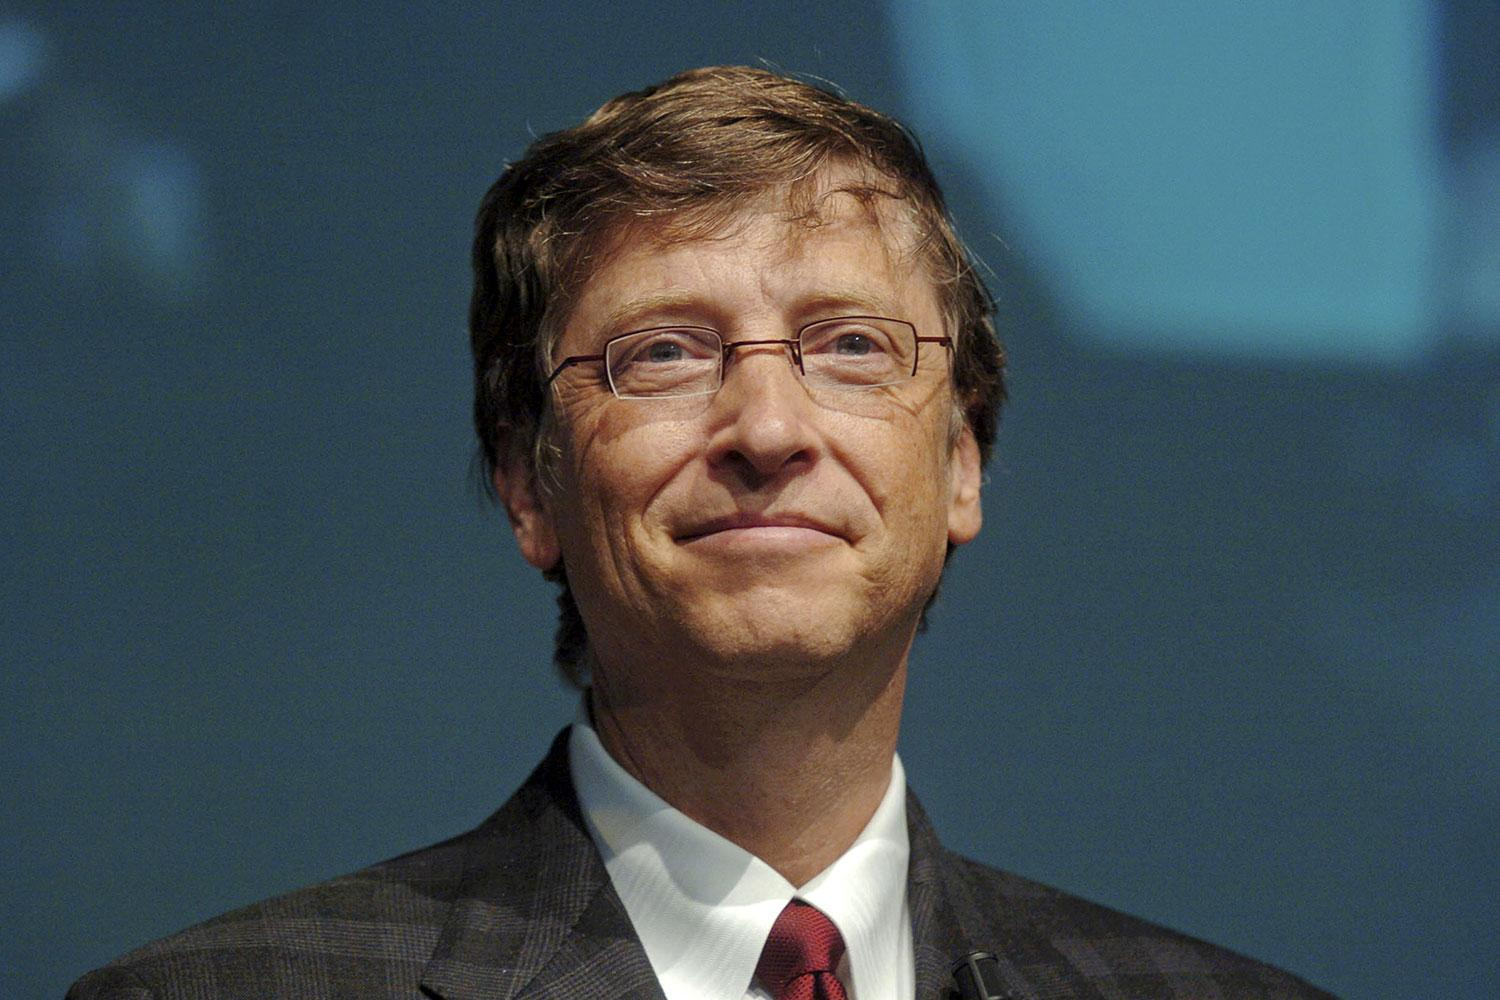 bill-gates-says-us-government-should-tell-users-when-looking-at-their-data-503146-2